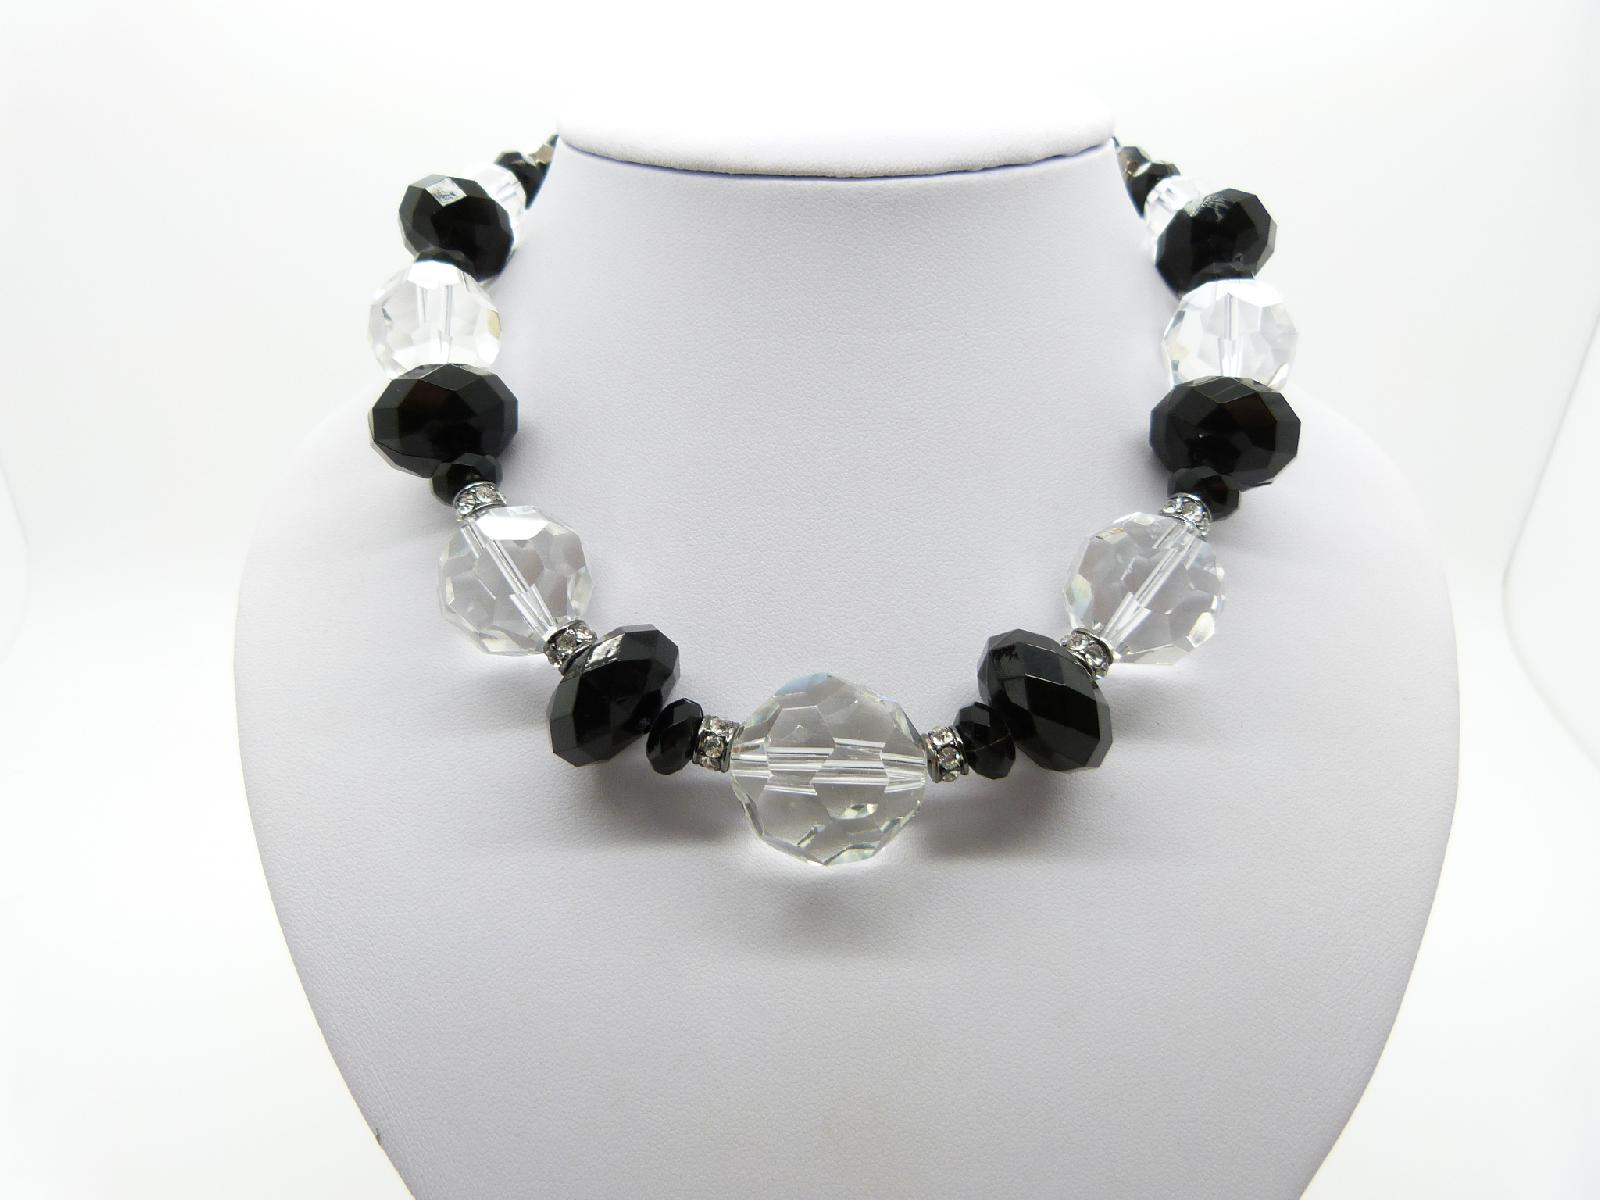 Vintge 50s Style Signed M&S Clear Glass Crystal Bead and Black Plastic Bead Necklace 46cms